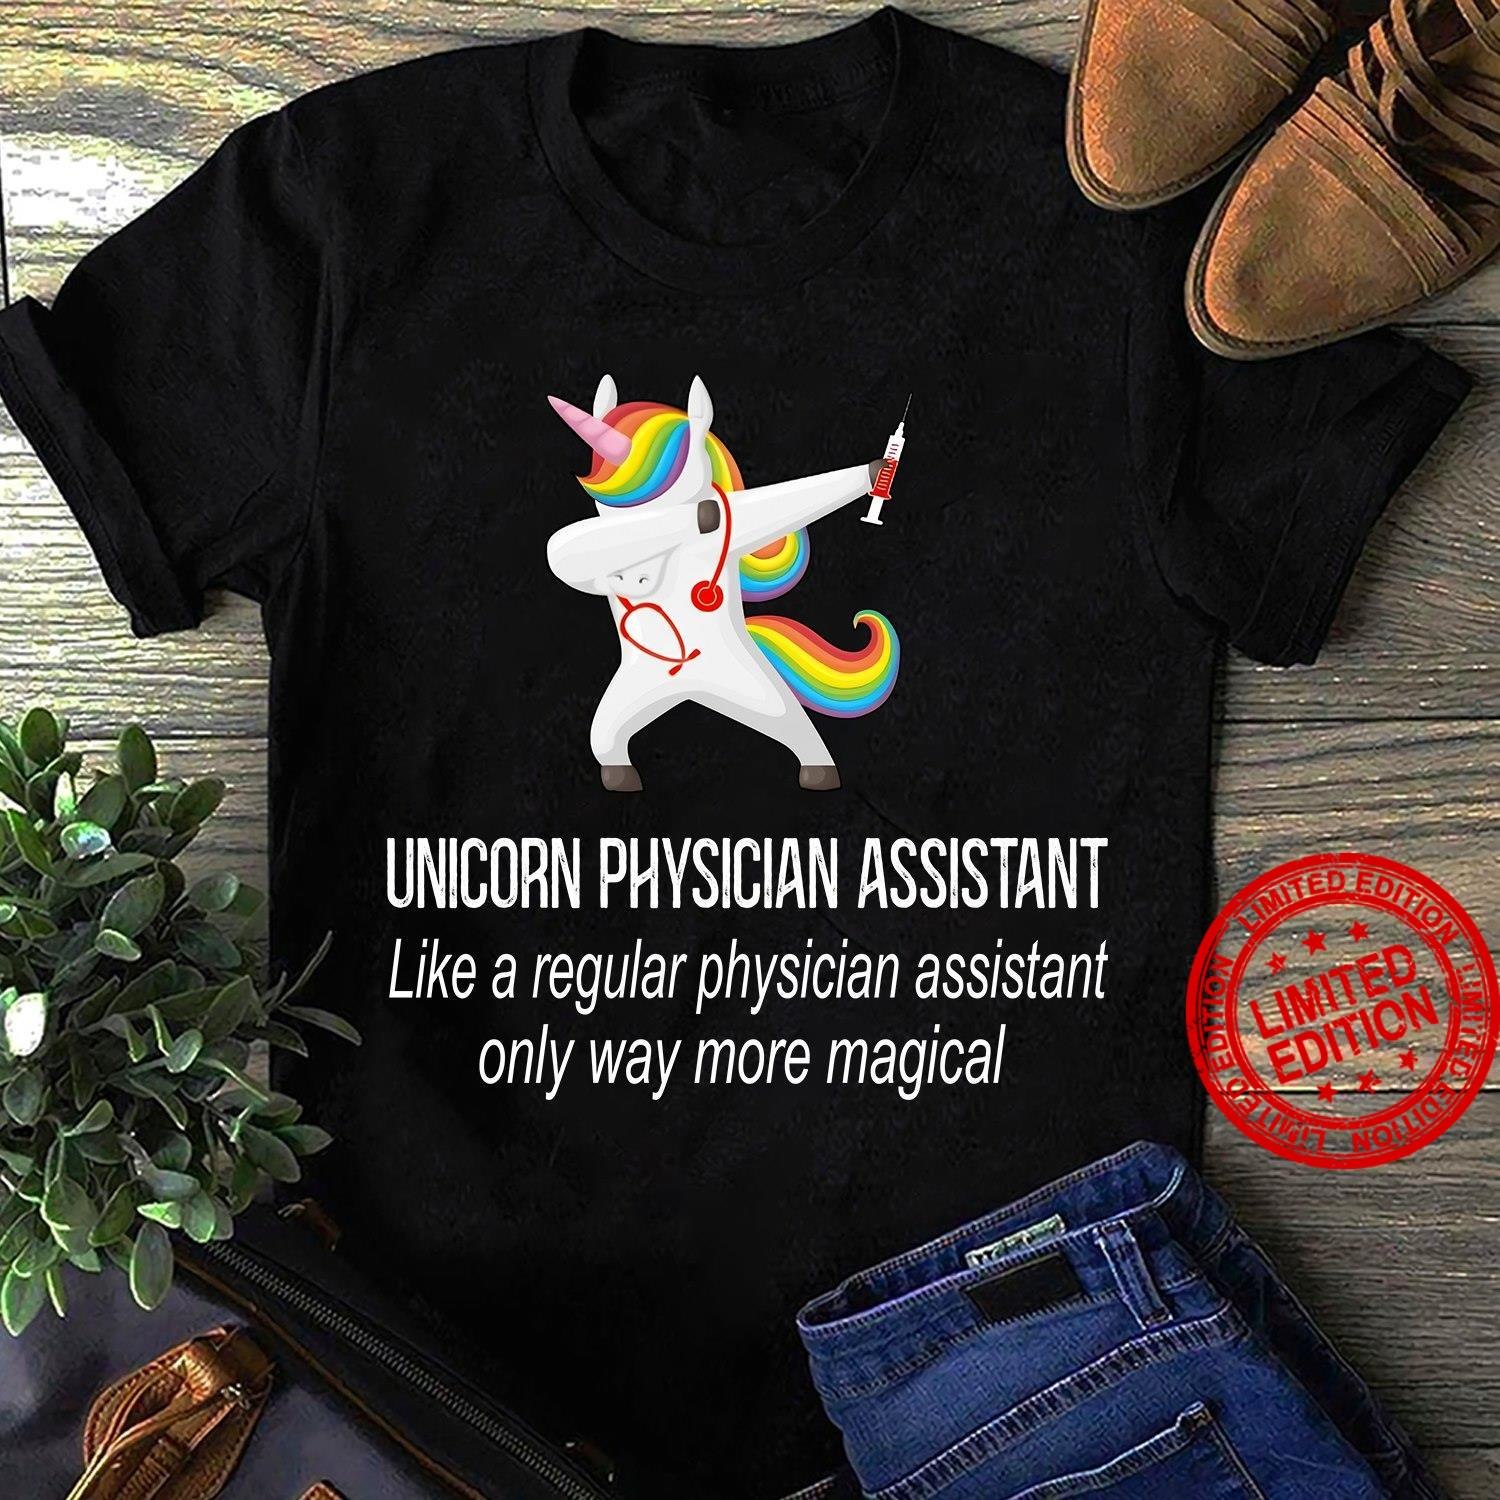 Unicorn Physician Assistant Like A Regular Physician Assistant Only Way More Magical Shirt